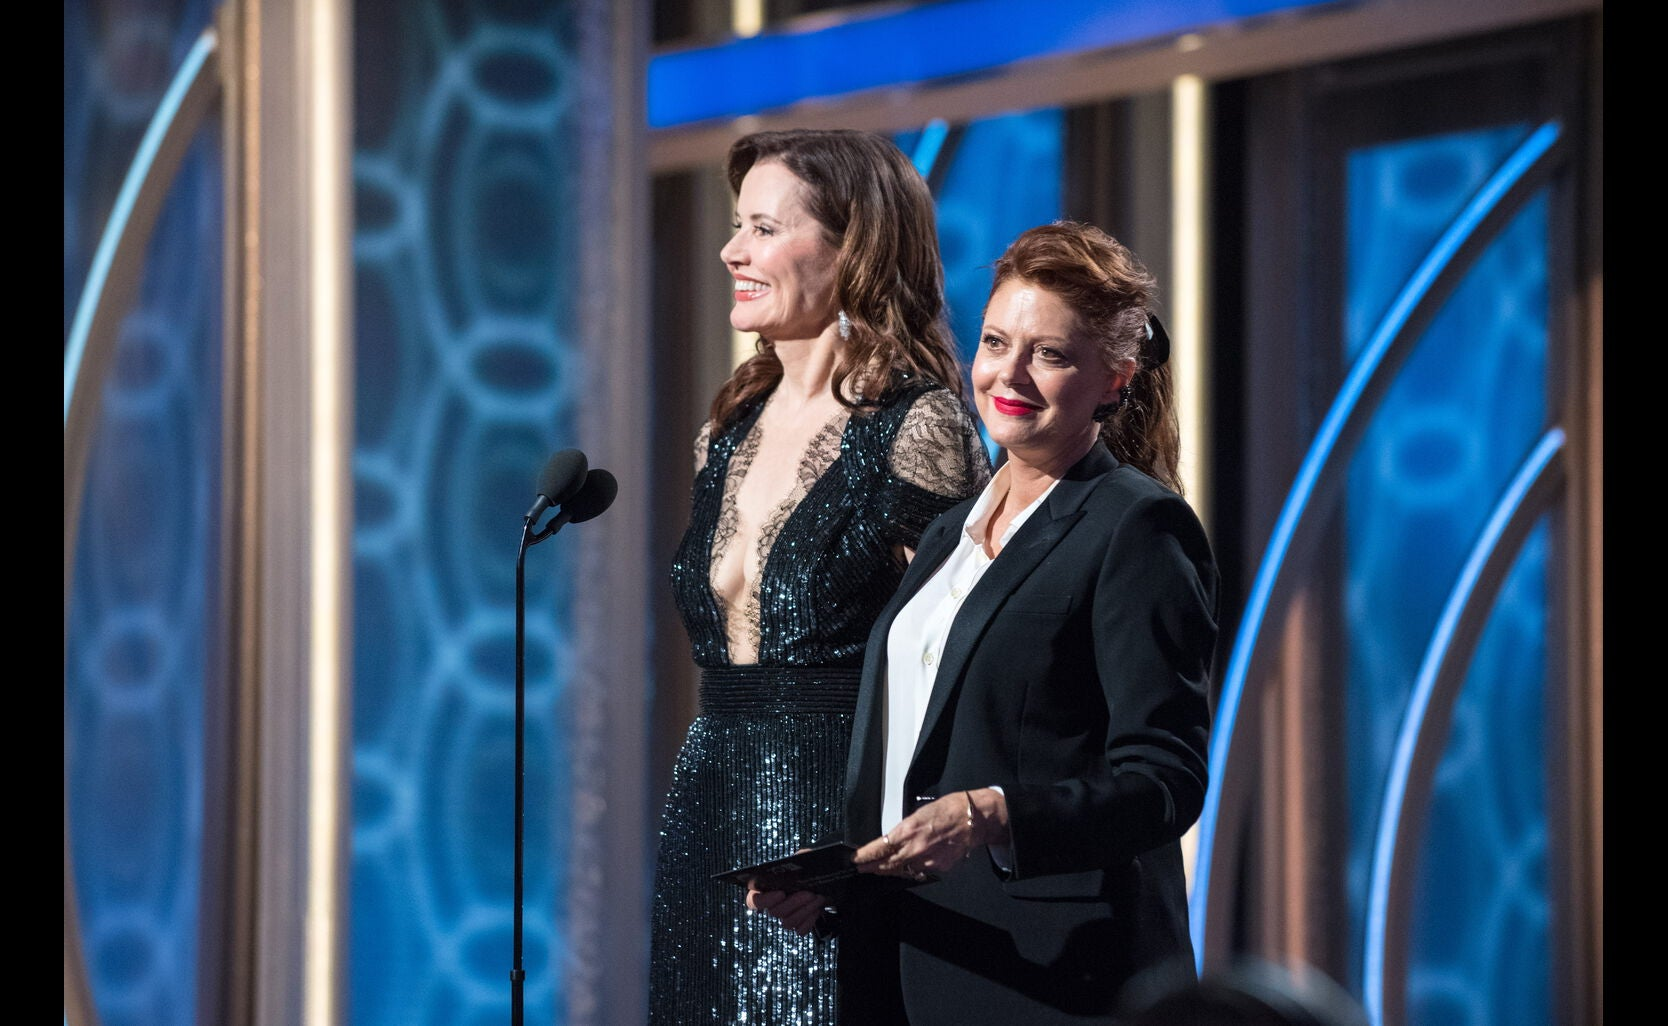 Susan Sarandon and Geena Davis